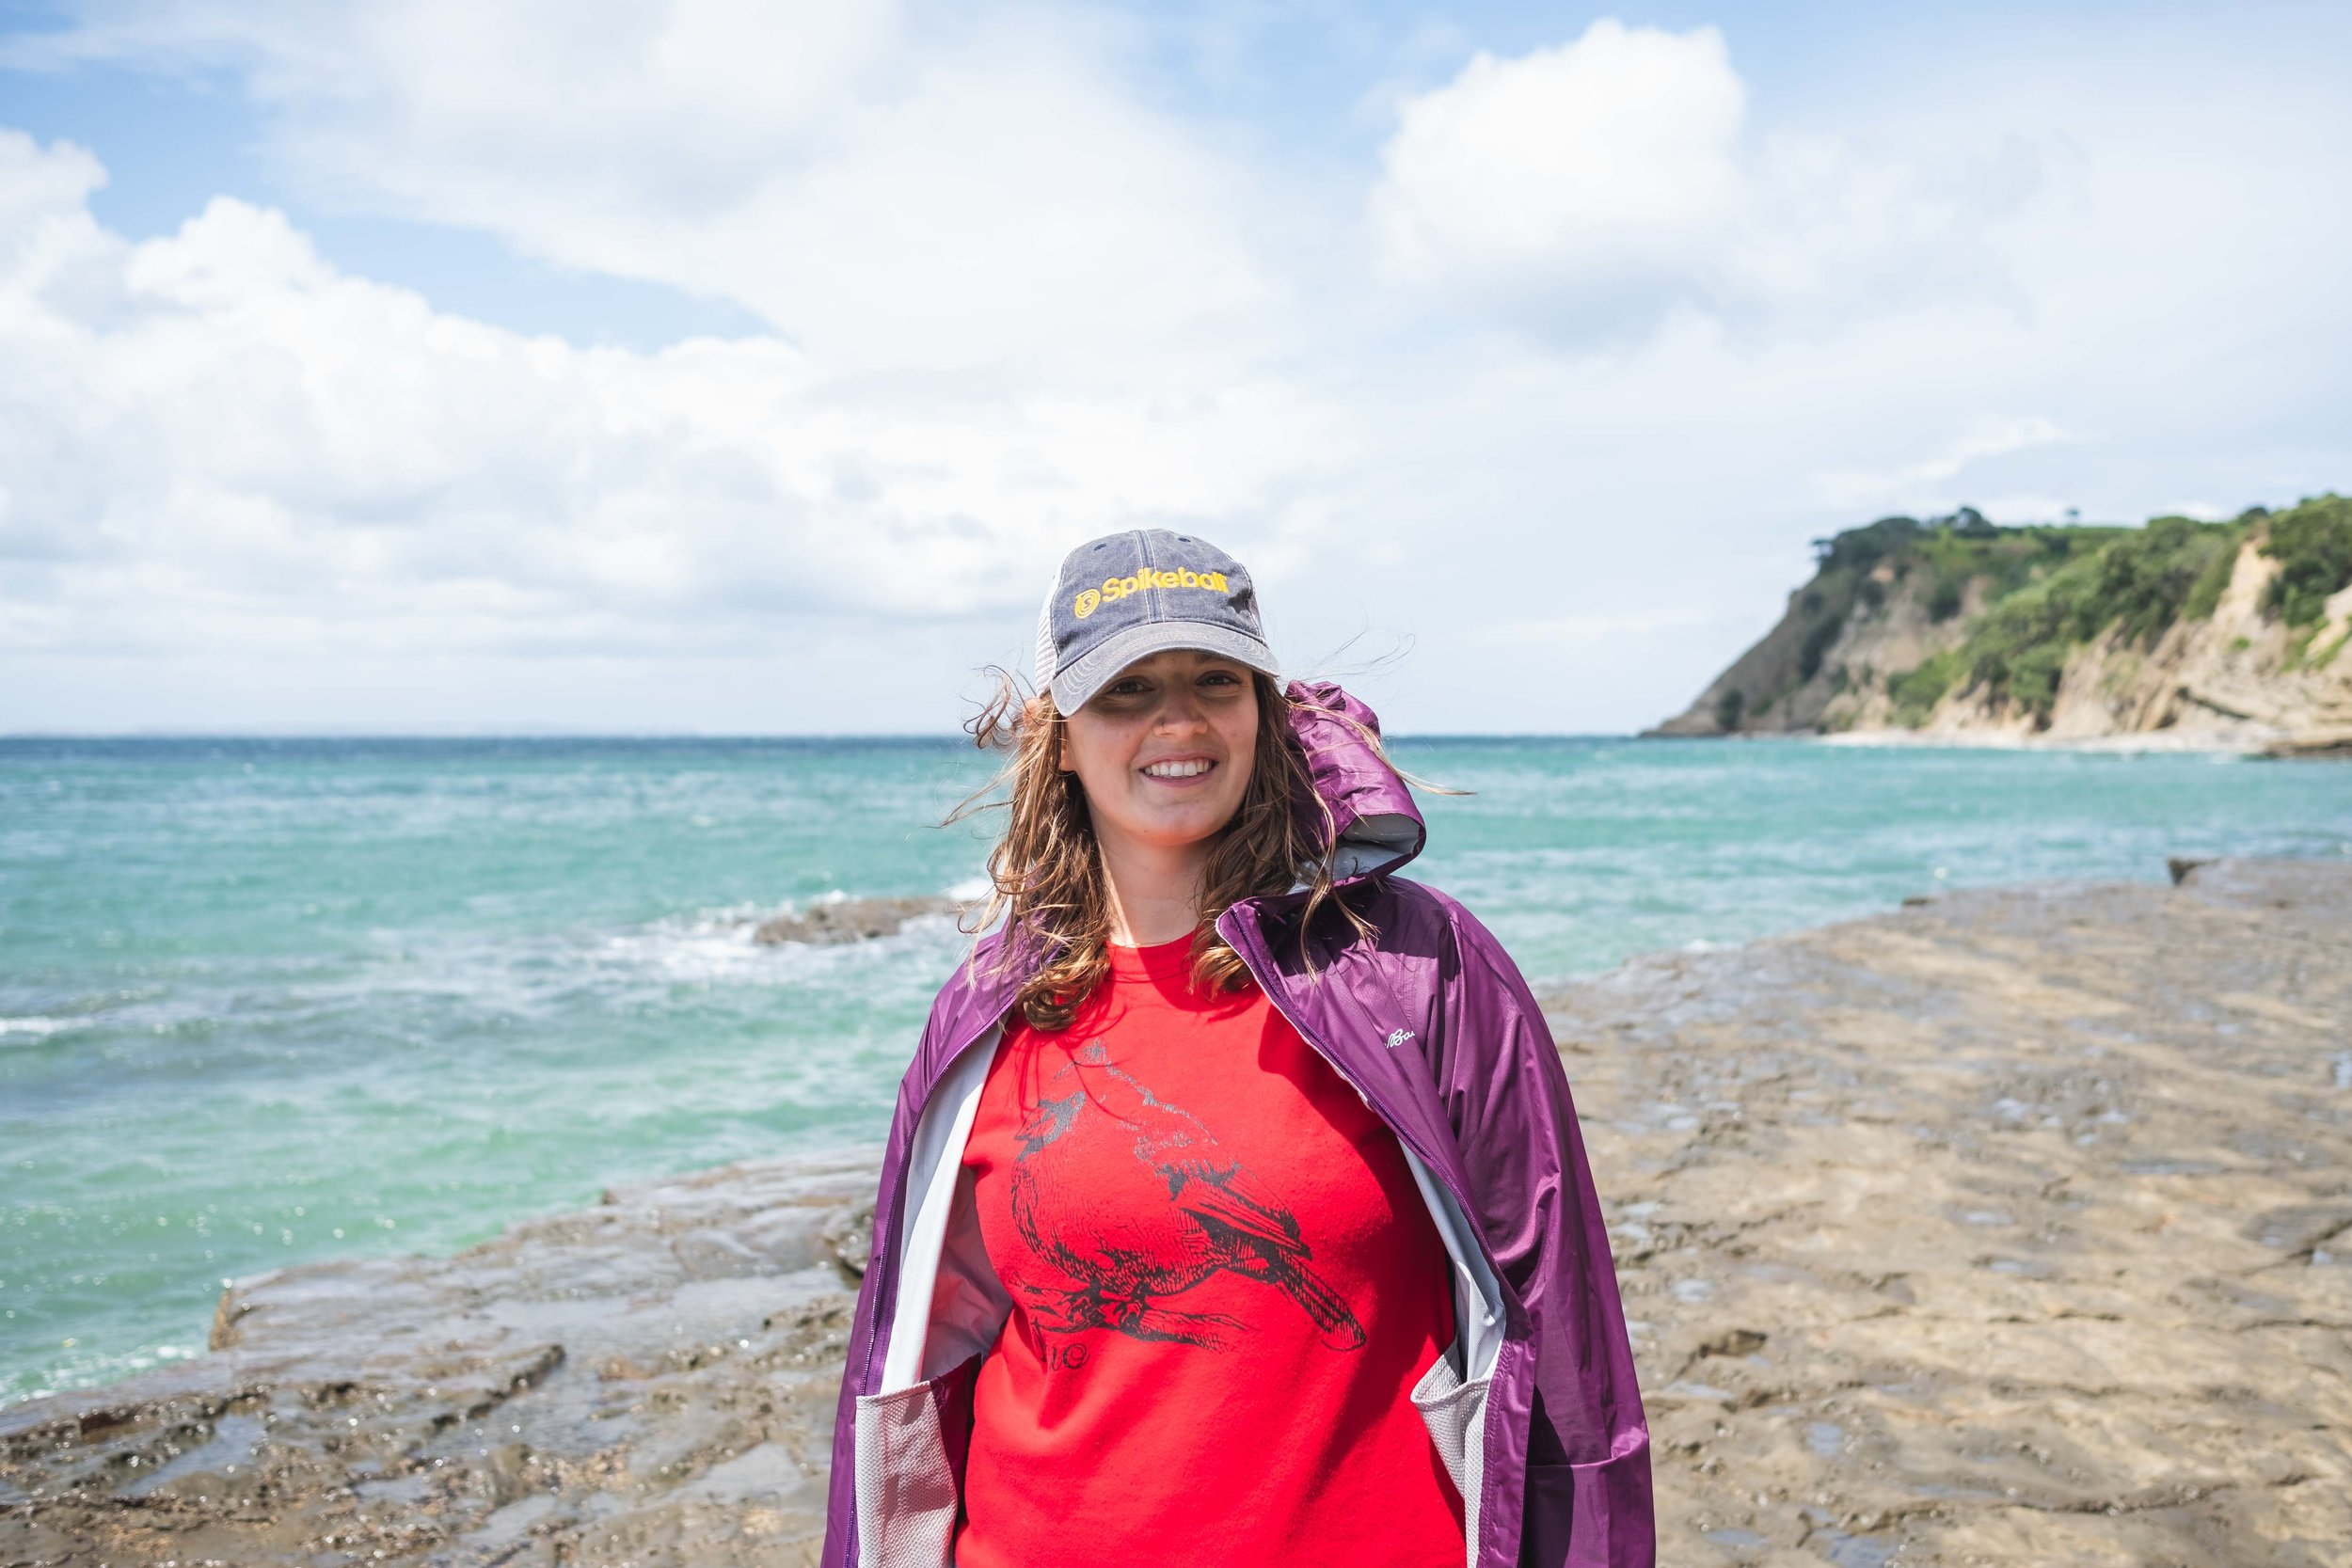 Me soon before my hat flew into the ocean. Seth so gallantly saved it for me after much effort!